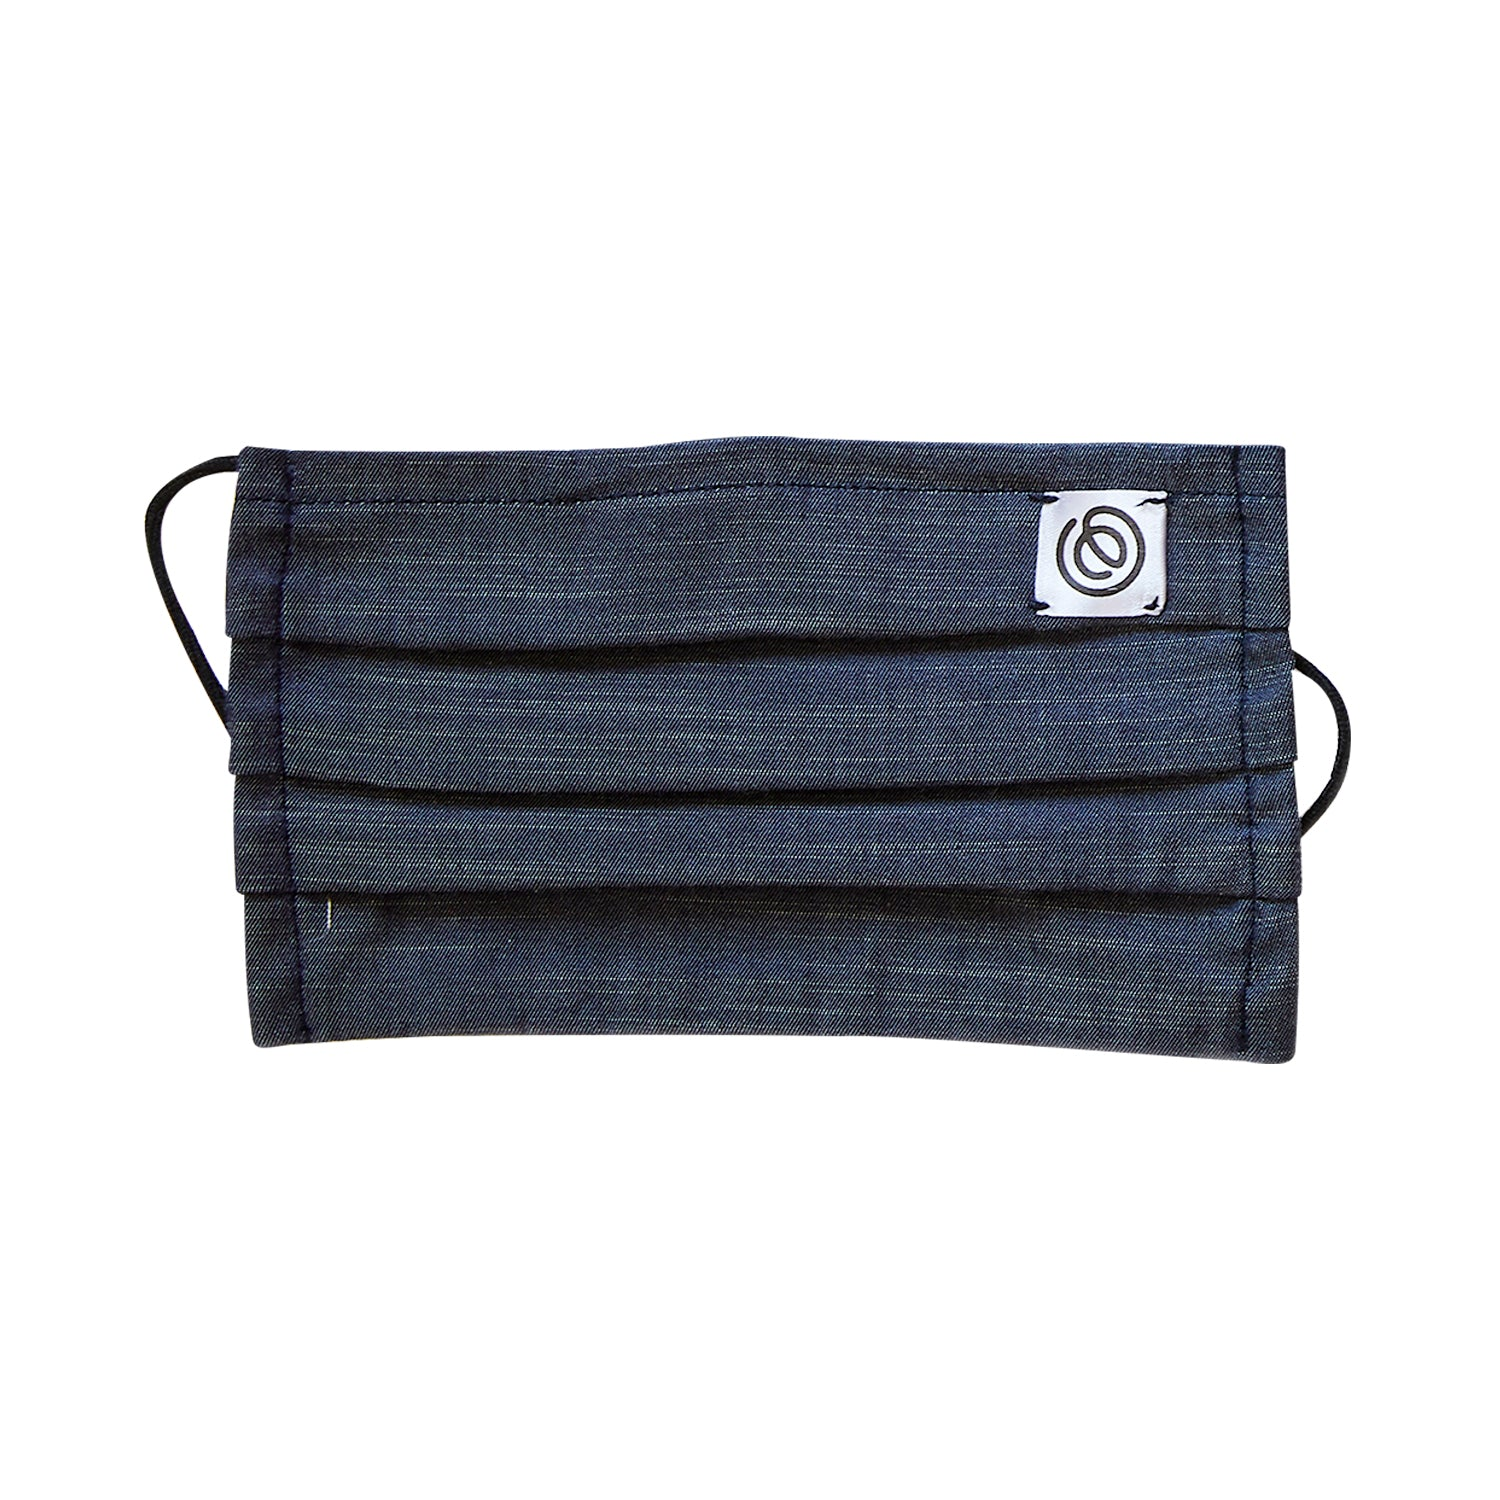 Easy Mask Pleated - Indigo Chambray (3 Pack)